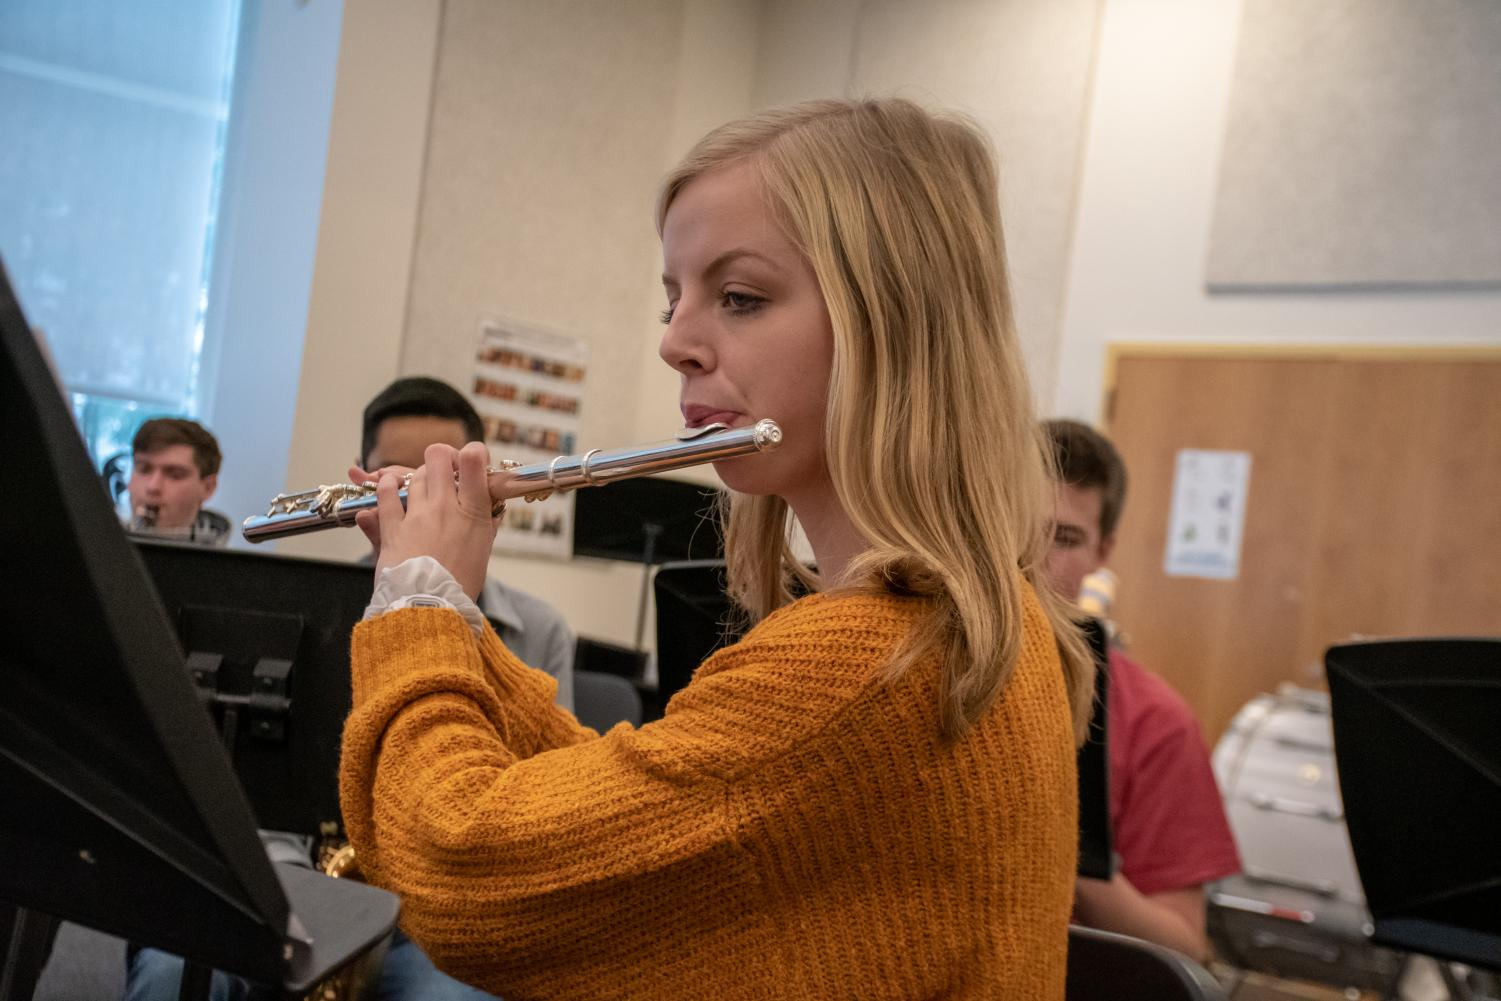 Senior Abby McCue plays her flute as a part of the wind ensemble. For the fall concert, McCue composed an original piece for the ensemble to play.